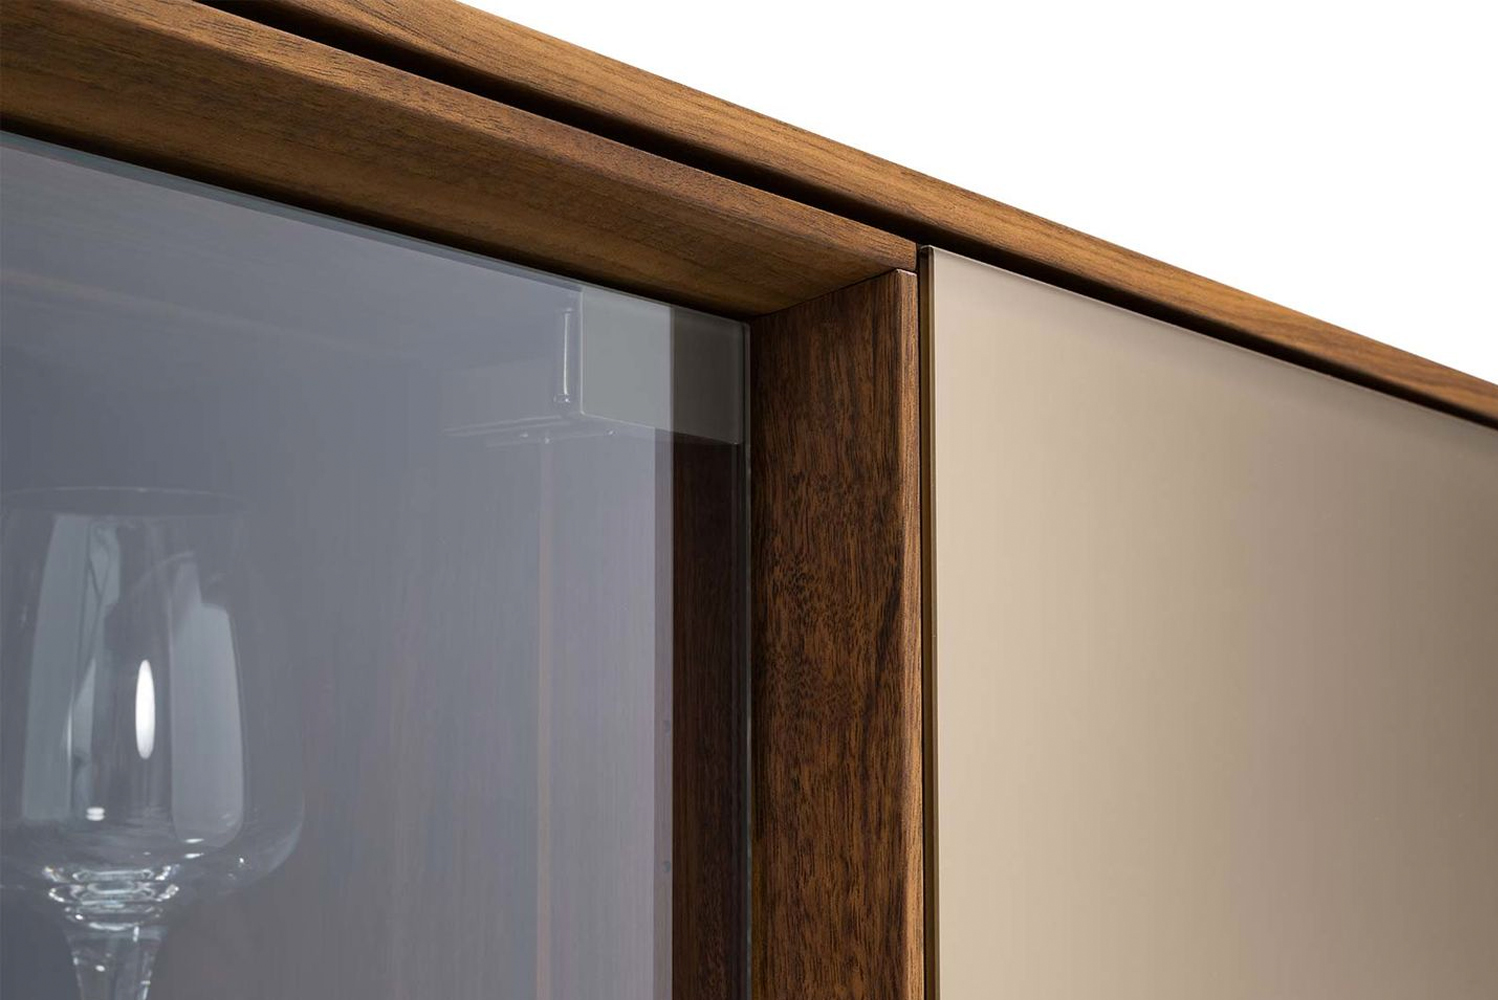 In terms of fronts, in addition to solid wood, a choice can be made between colored glass and ceramic.